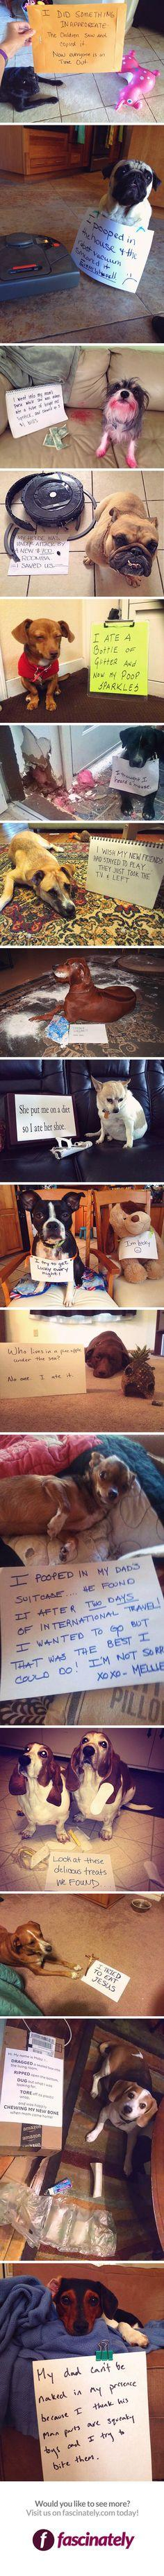 Meet the Naughtiest Dogs of 2014 - these cracked me up! It could partially be my lack of sleep right now but please enjoy :)  (sorry for the few inappropriate ones): Funny Pets, Naughtiest Dogs, Dogs Ear, Dog Shaming, Dogs Funny Humor, Funny Dogs, Bad Dog